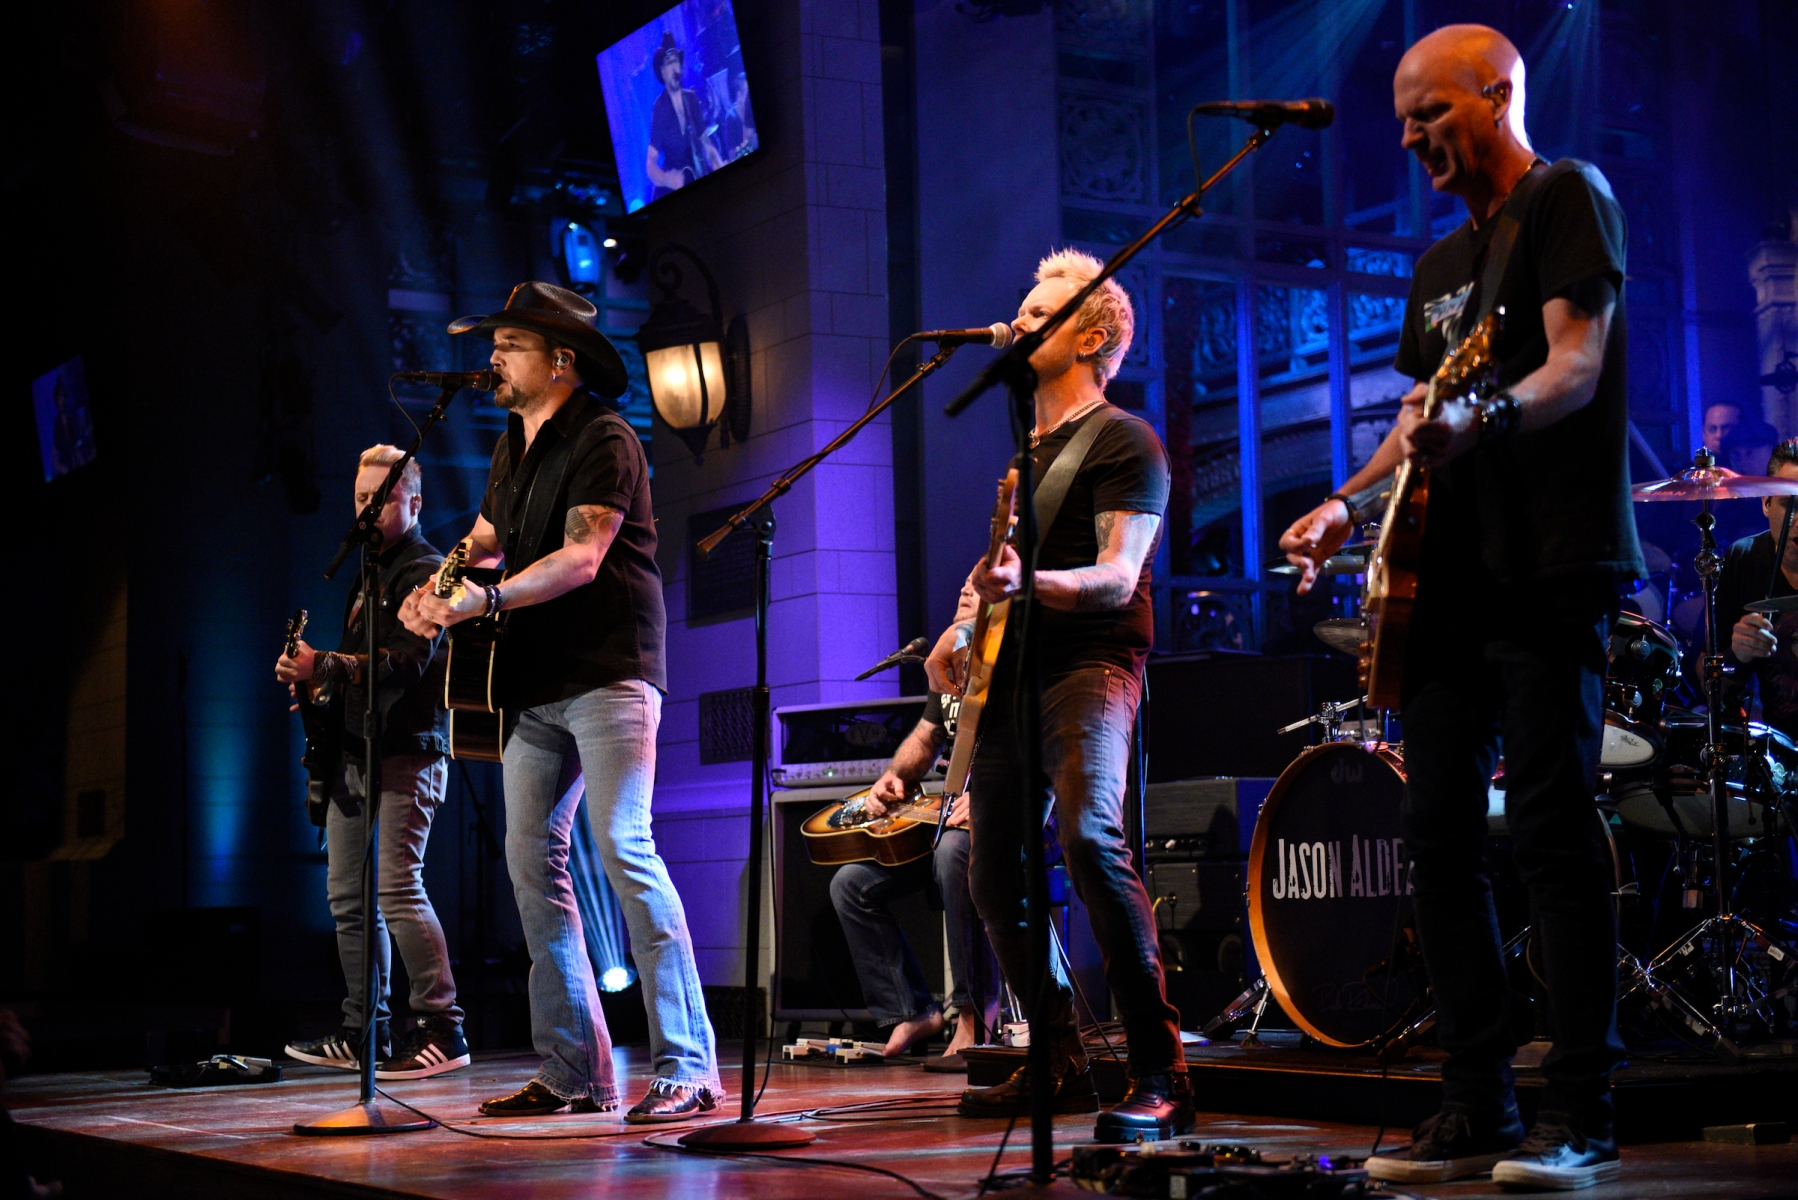 """Jason Aldean performs """"I Won't Back Down"""" in Studio 8H on October 7, 2017 to honor the victims and survivors of the Las Vegas shooting. Country music has spent the past year grappling with the tragedy. (Photo by Will Heath/NBC/NBCU Photo Bank via Getty Images)"""